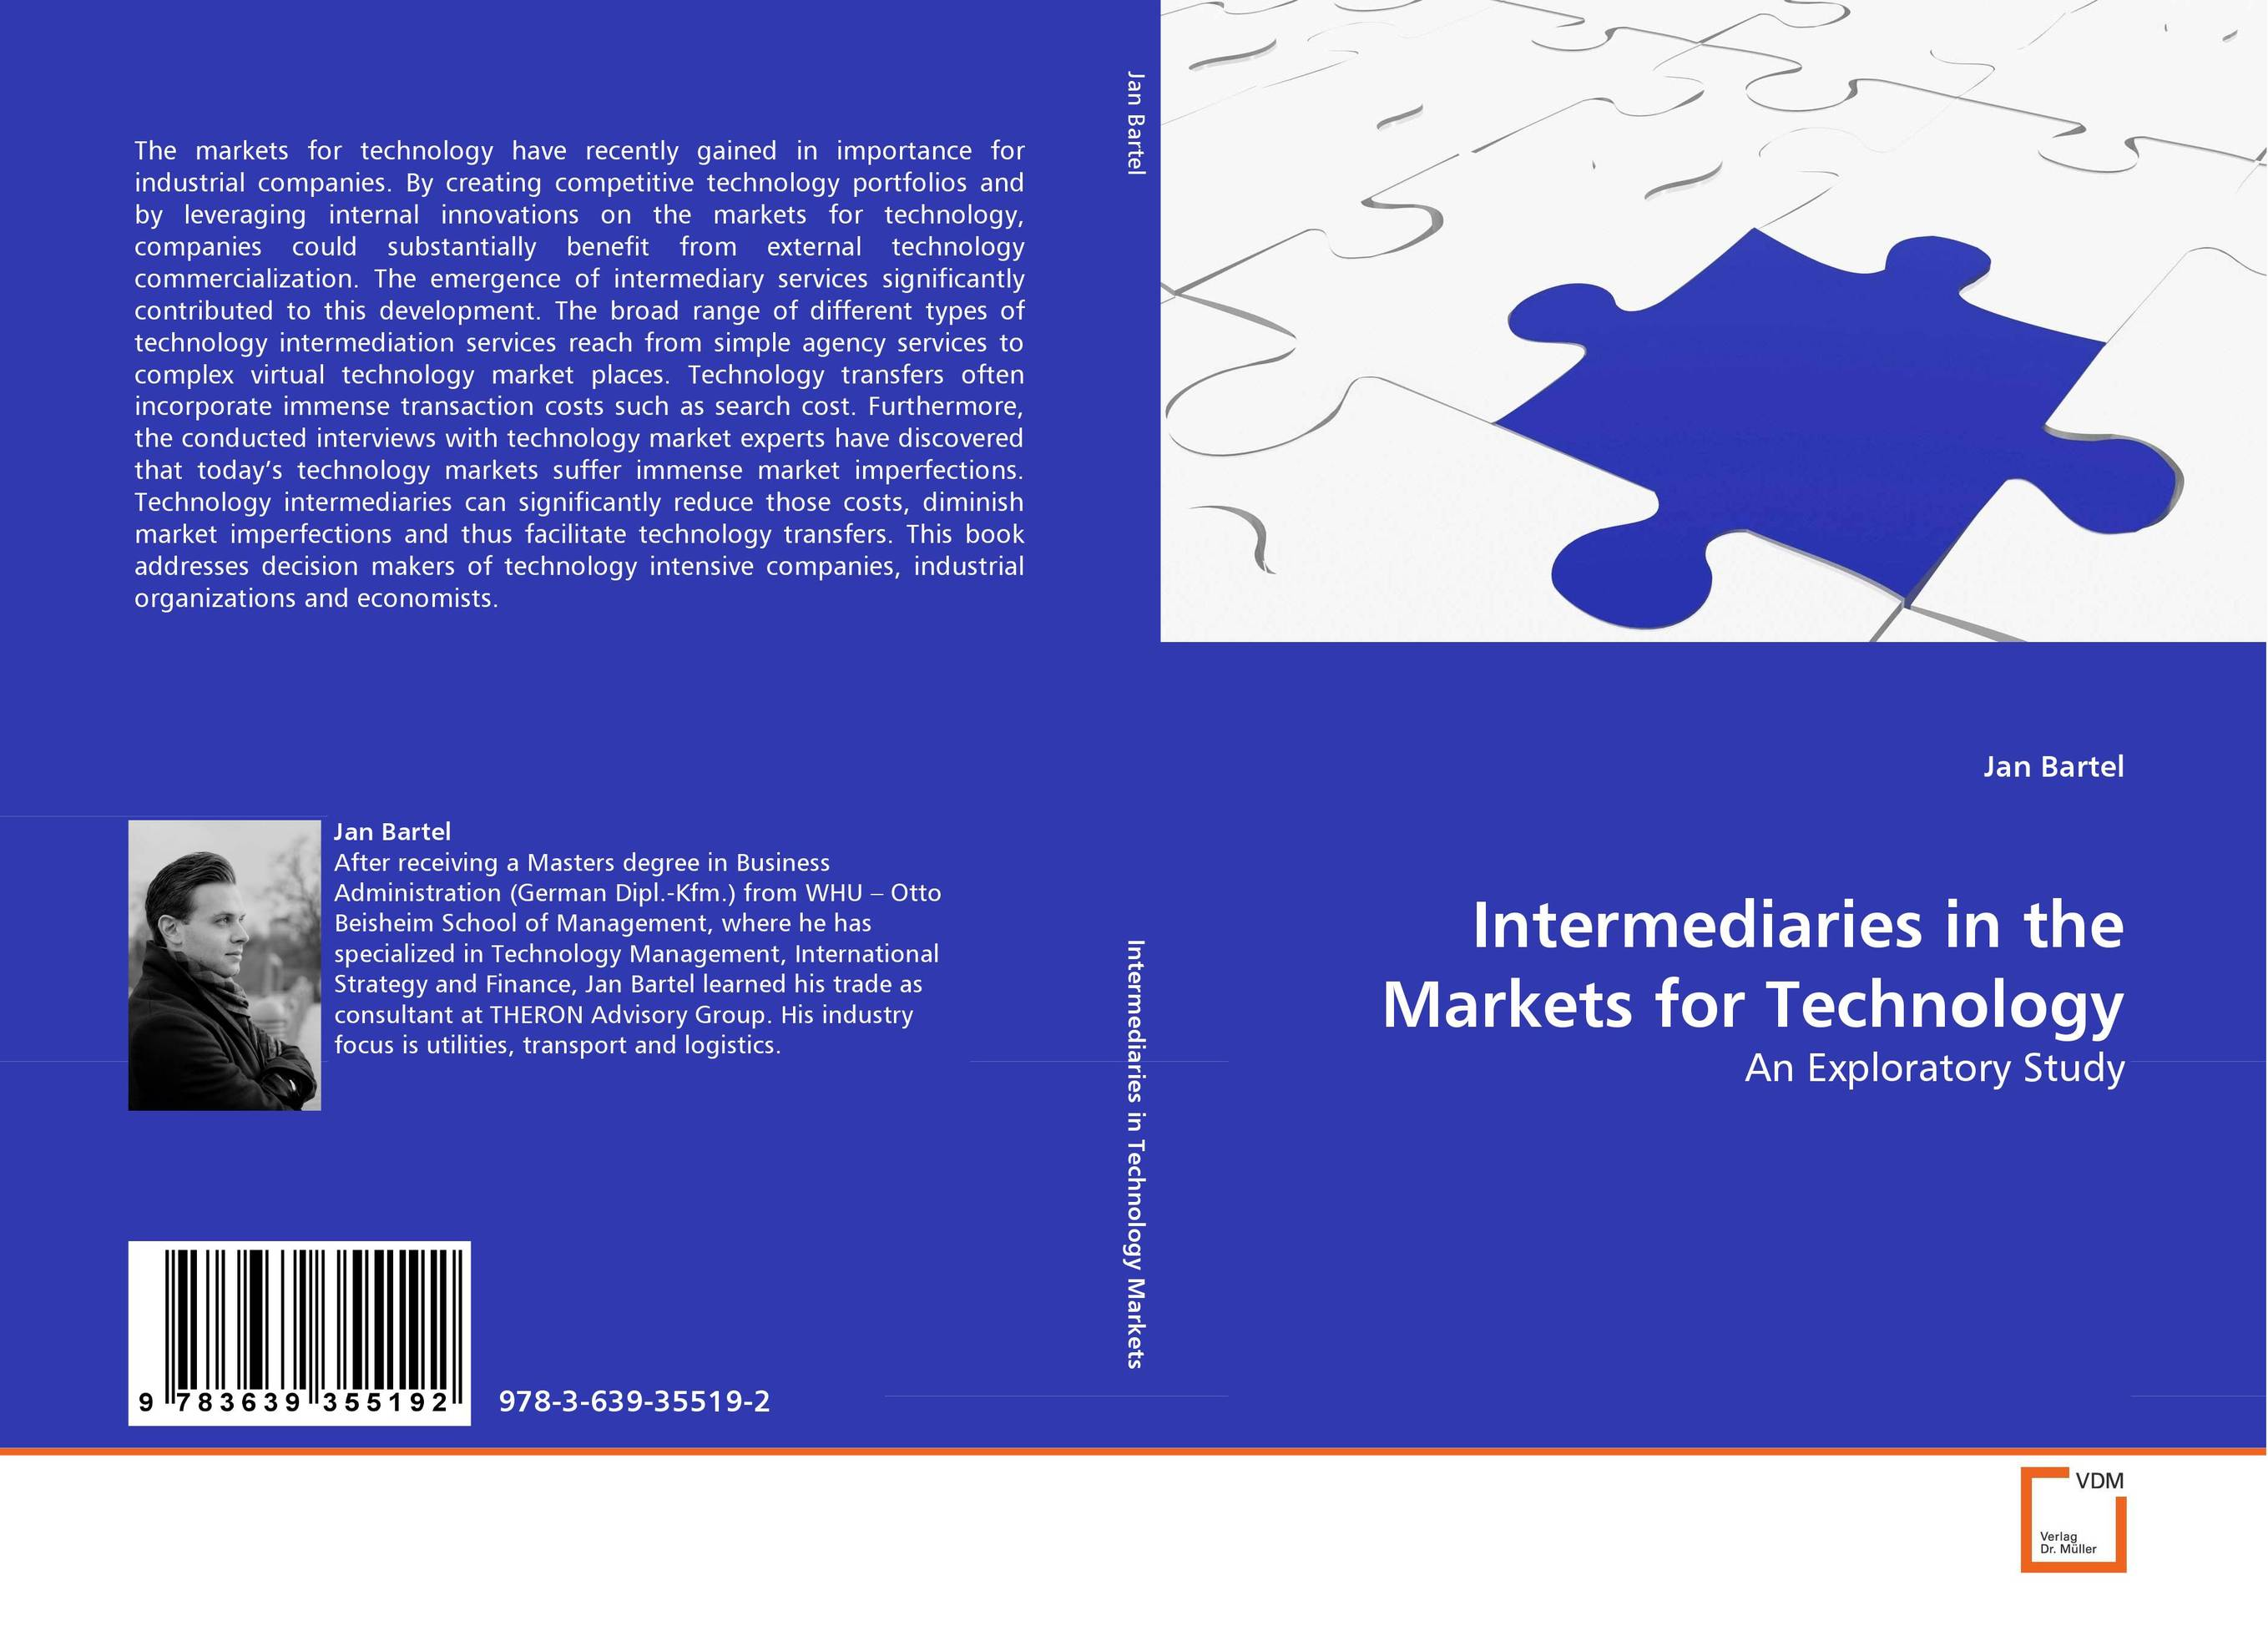 Intermediaries in the Markets for Technology